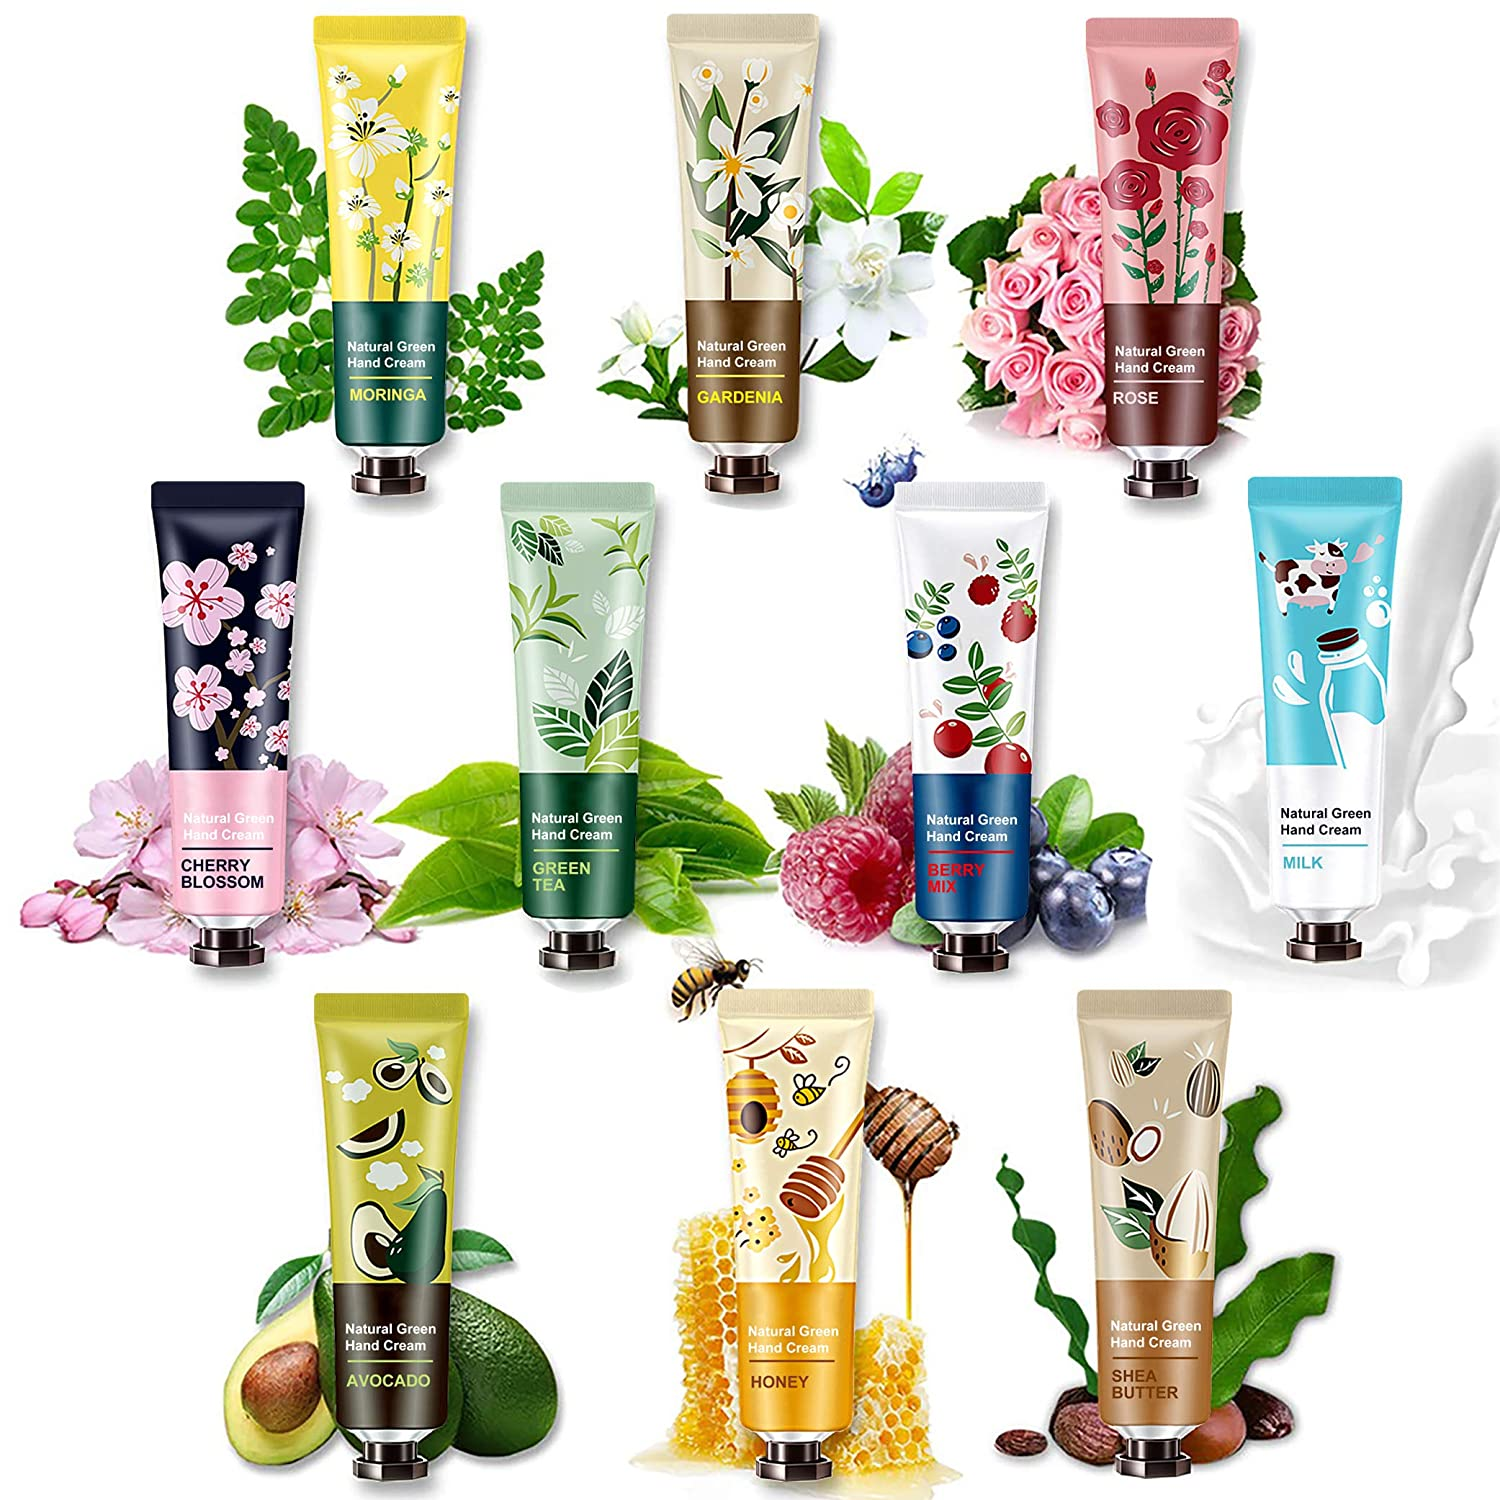 10 Pack Natural Plant Fragrance Hand Cream for Dry Working Hands, Moisturizing Hand Care Cream Travel Gift Set With Natural Shea Butter And Aloe For Men And Women,Travel Size Hand Lotion-30ml